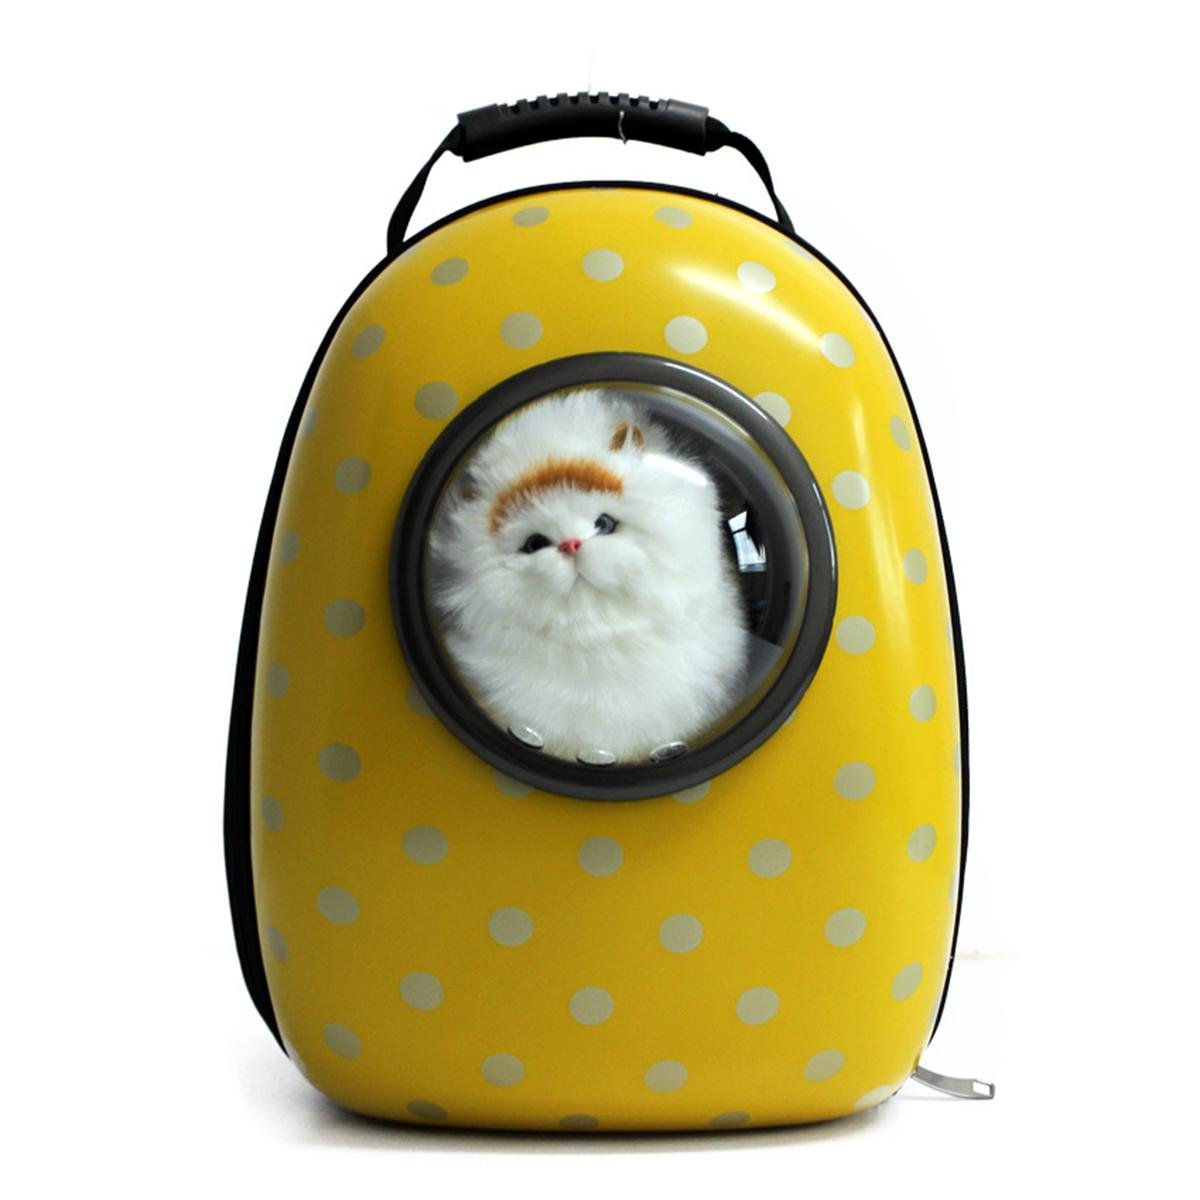 Women Luxury Portable Poly Carbonate Pet Carrier Backpack Travel Hand Shoulder Bag For Cat Dog,292342cm